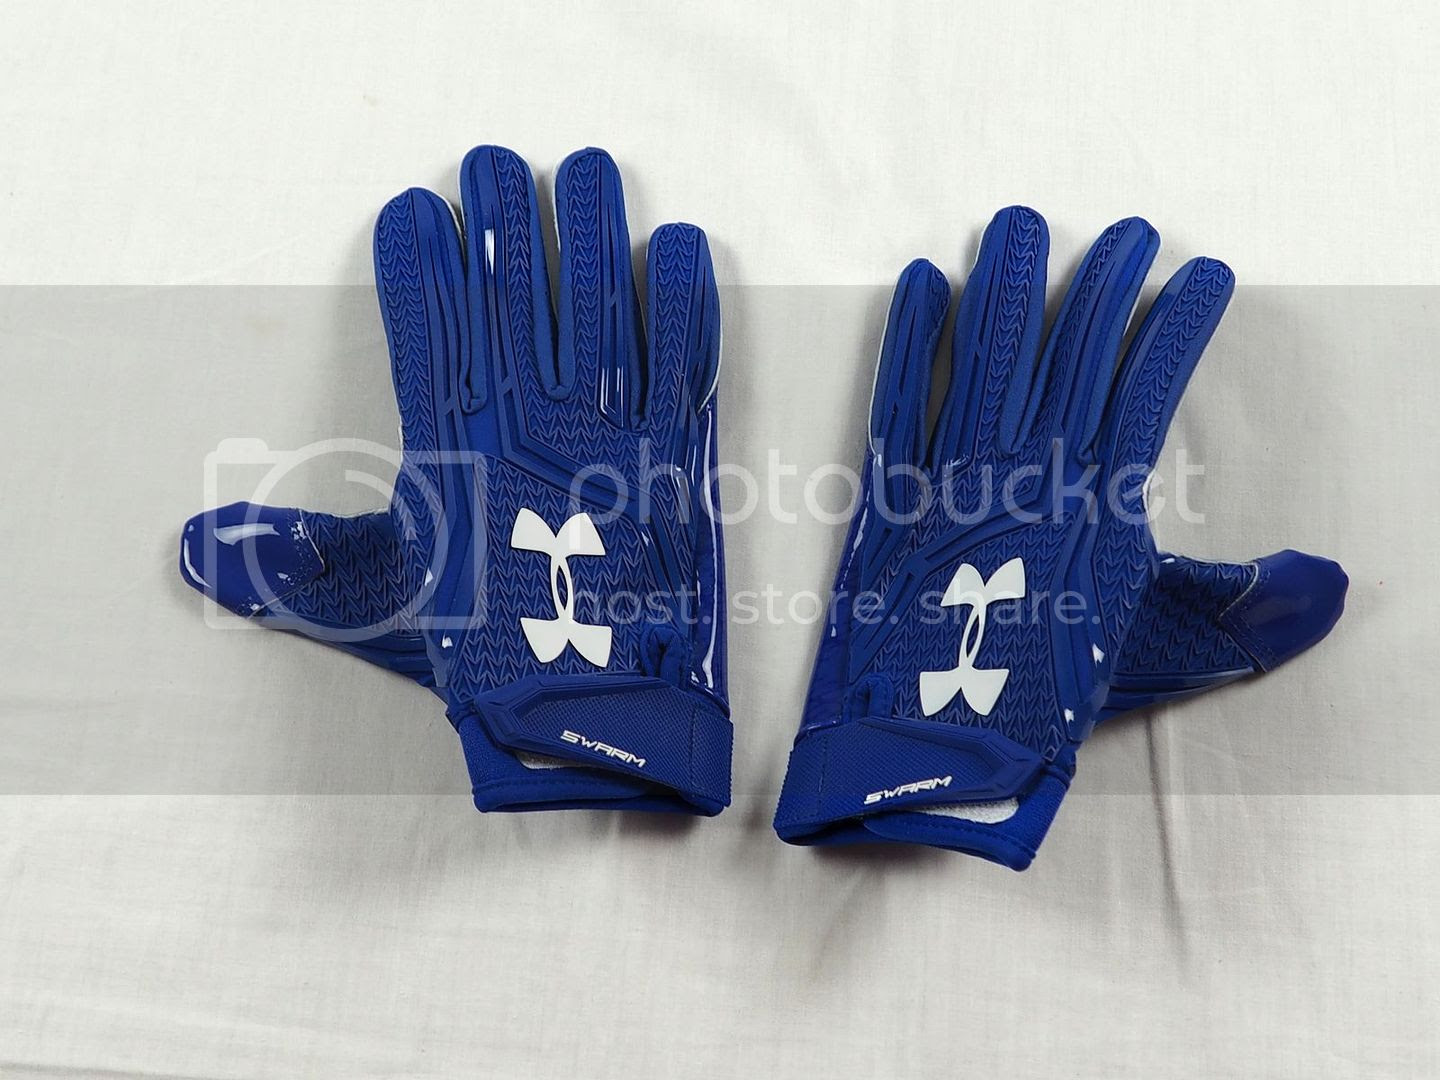 NEW Under Armour Swarm  Blue NFL Receiver Gloves L  eBay